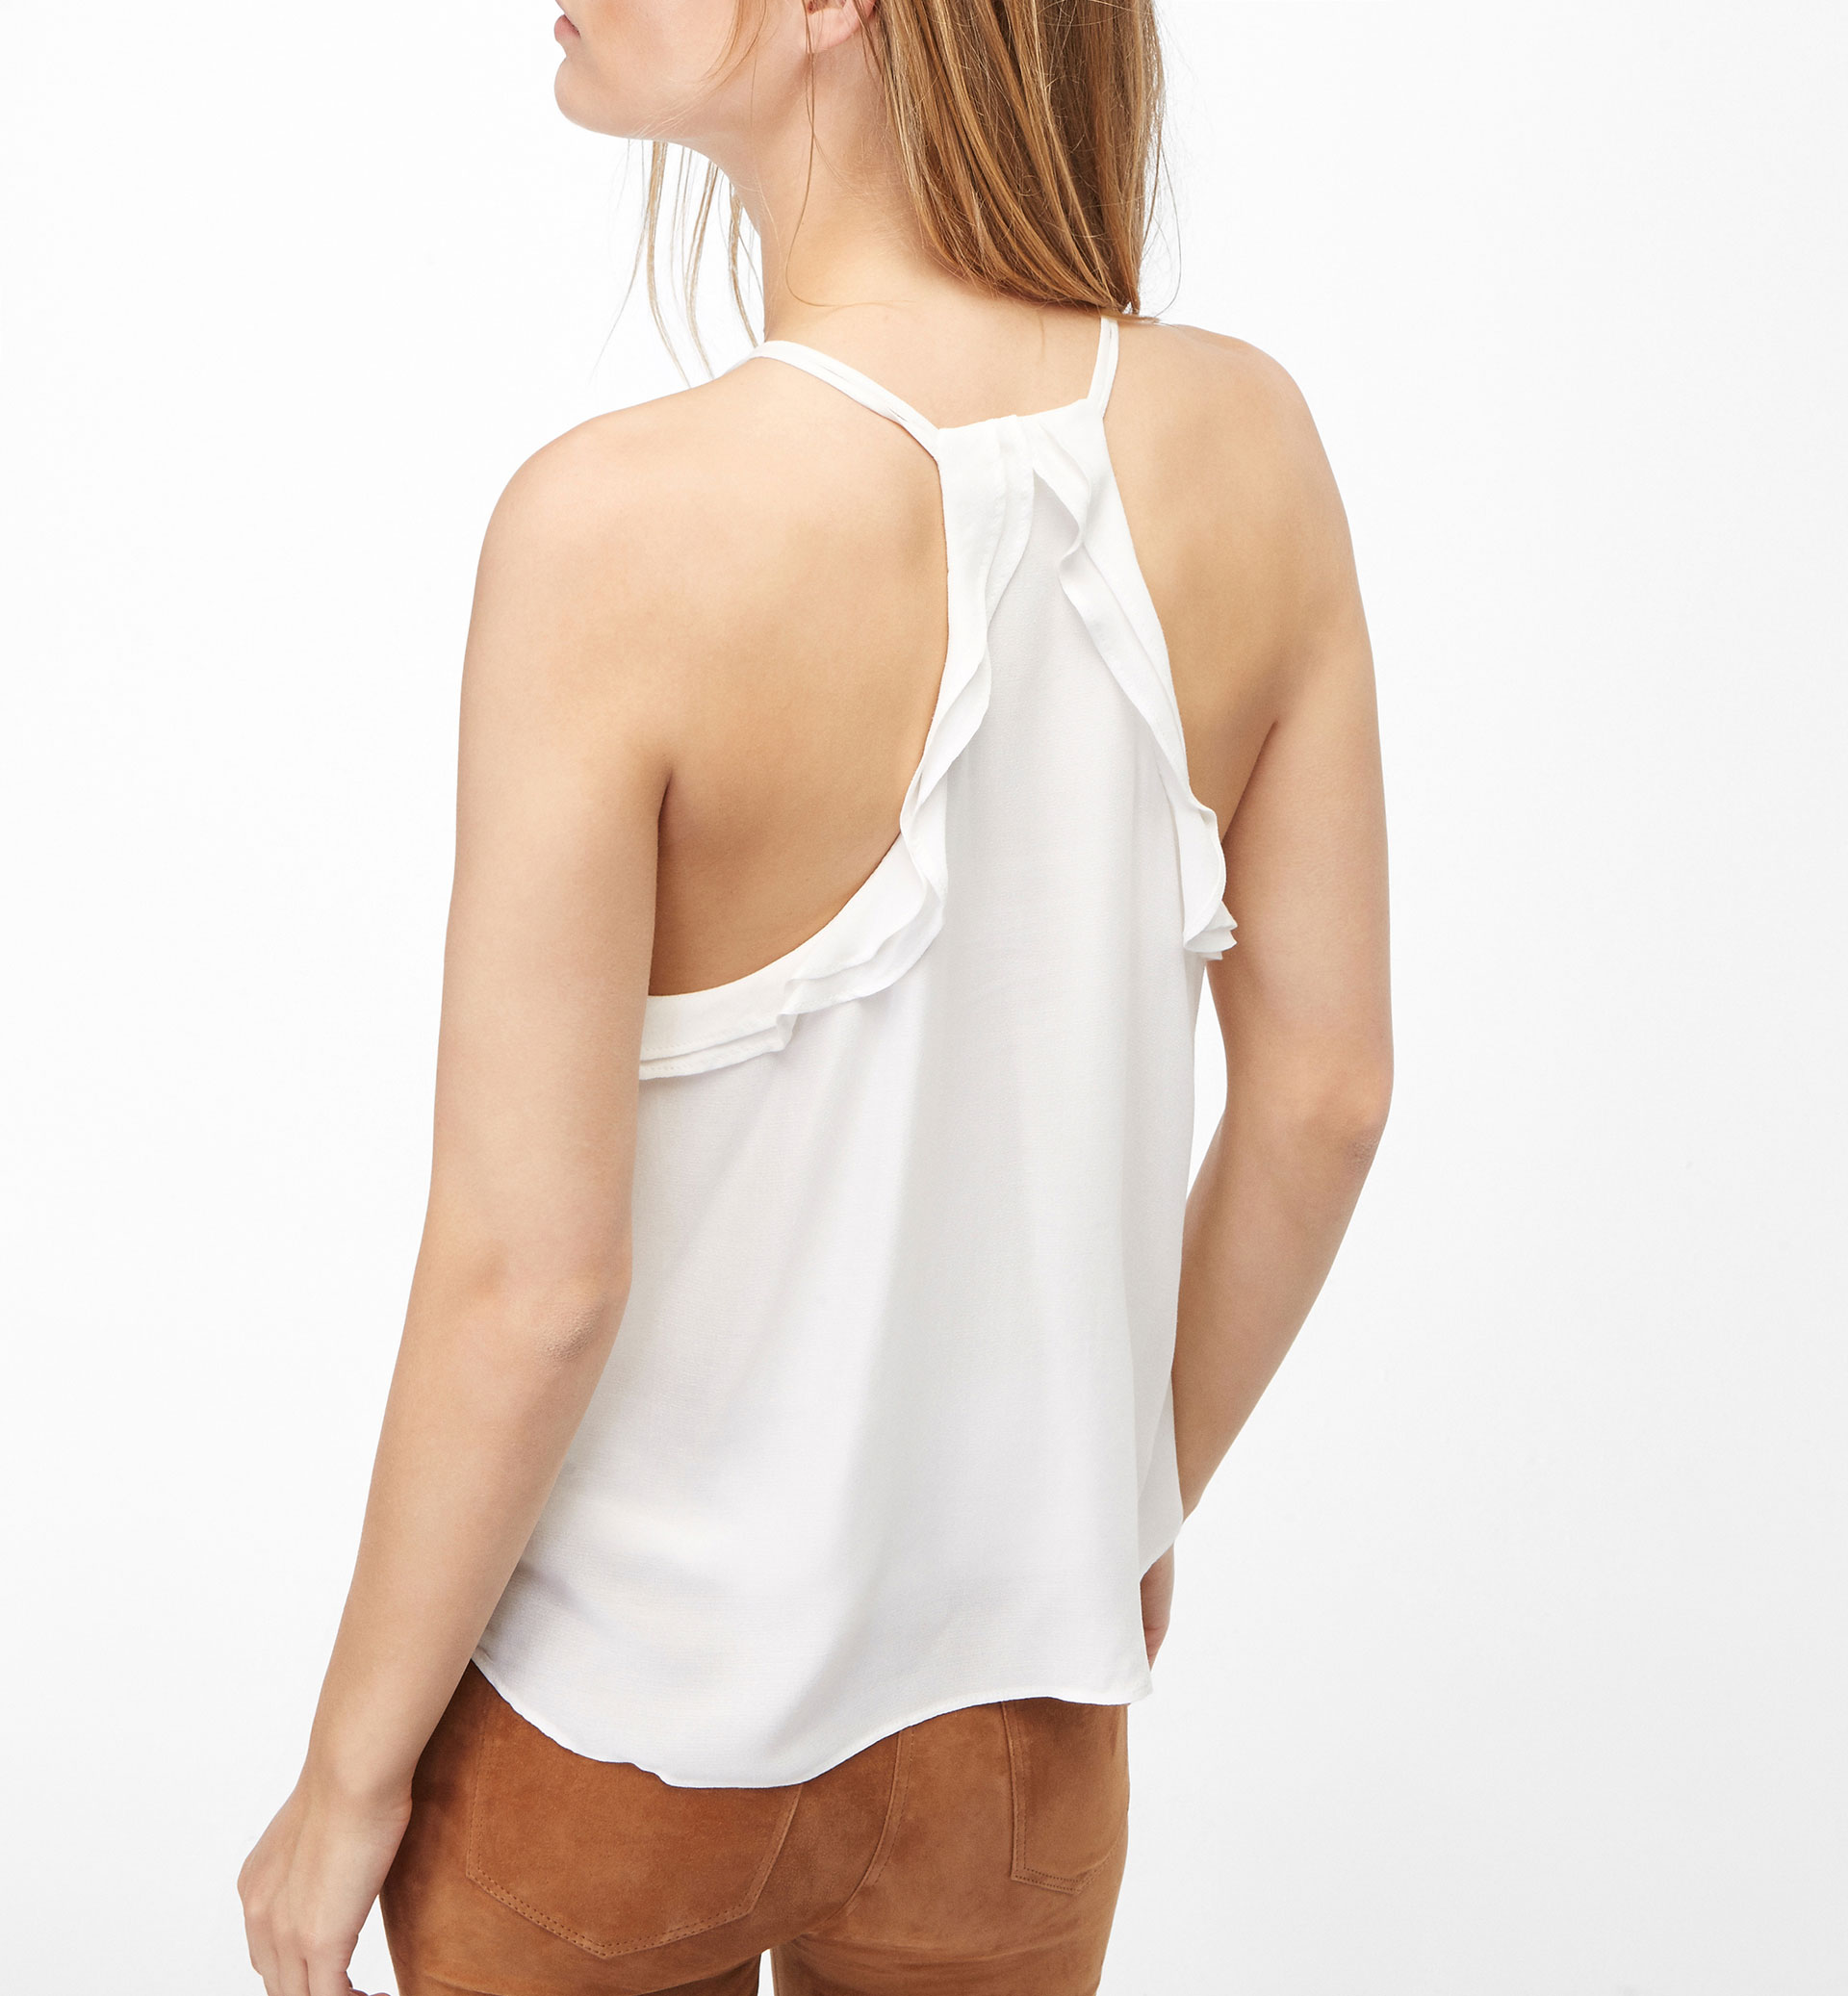 HALTER NECK TOP WITH FRILLS